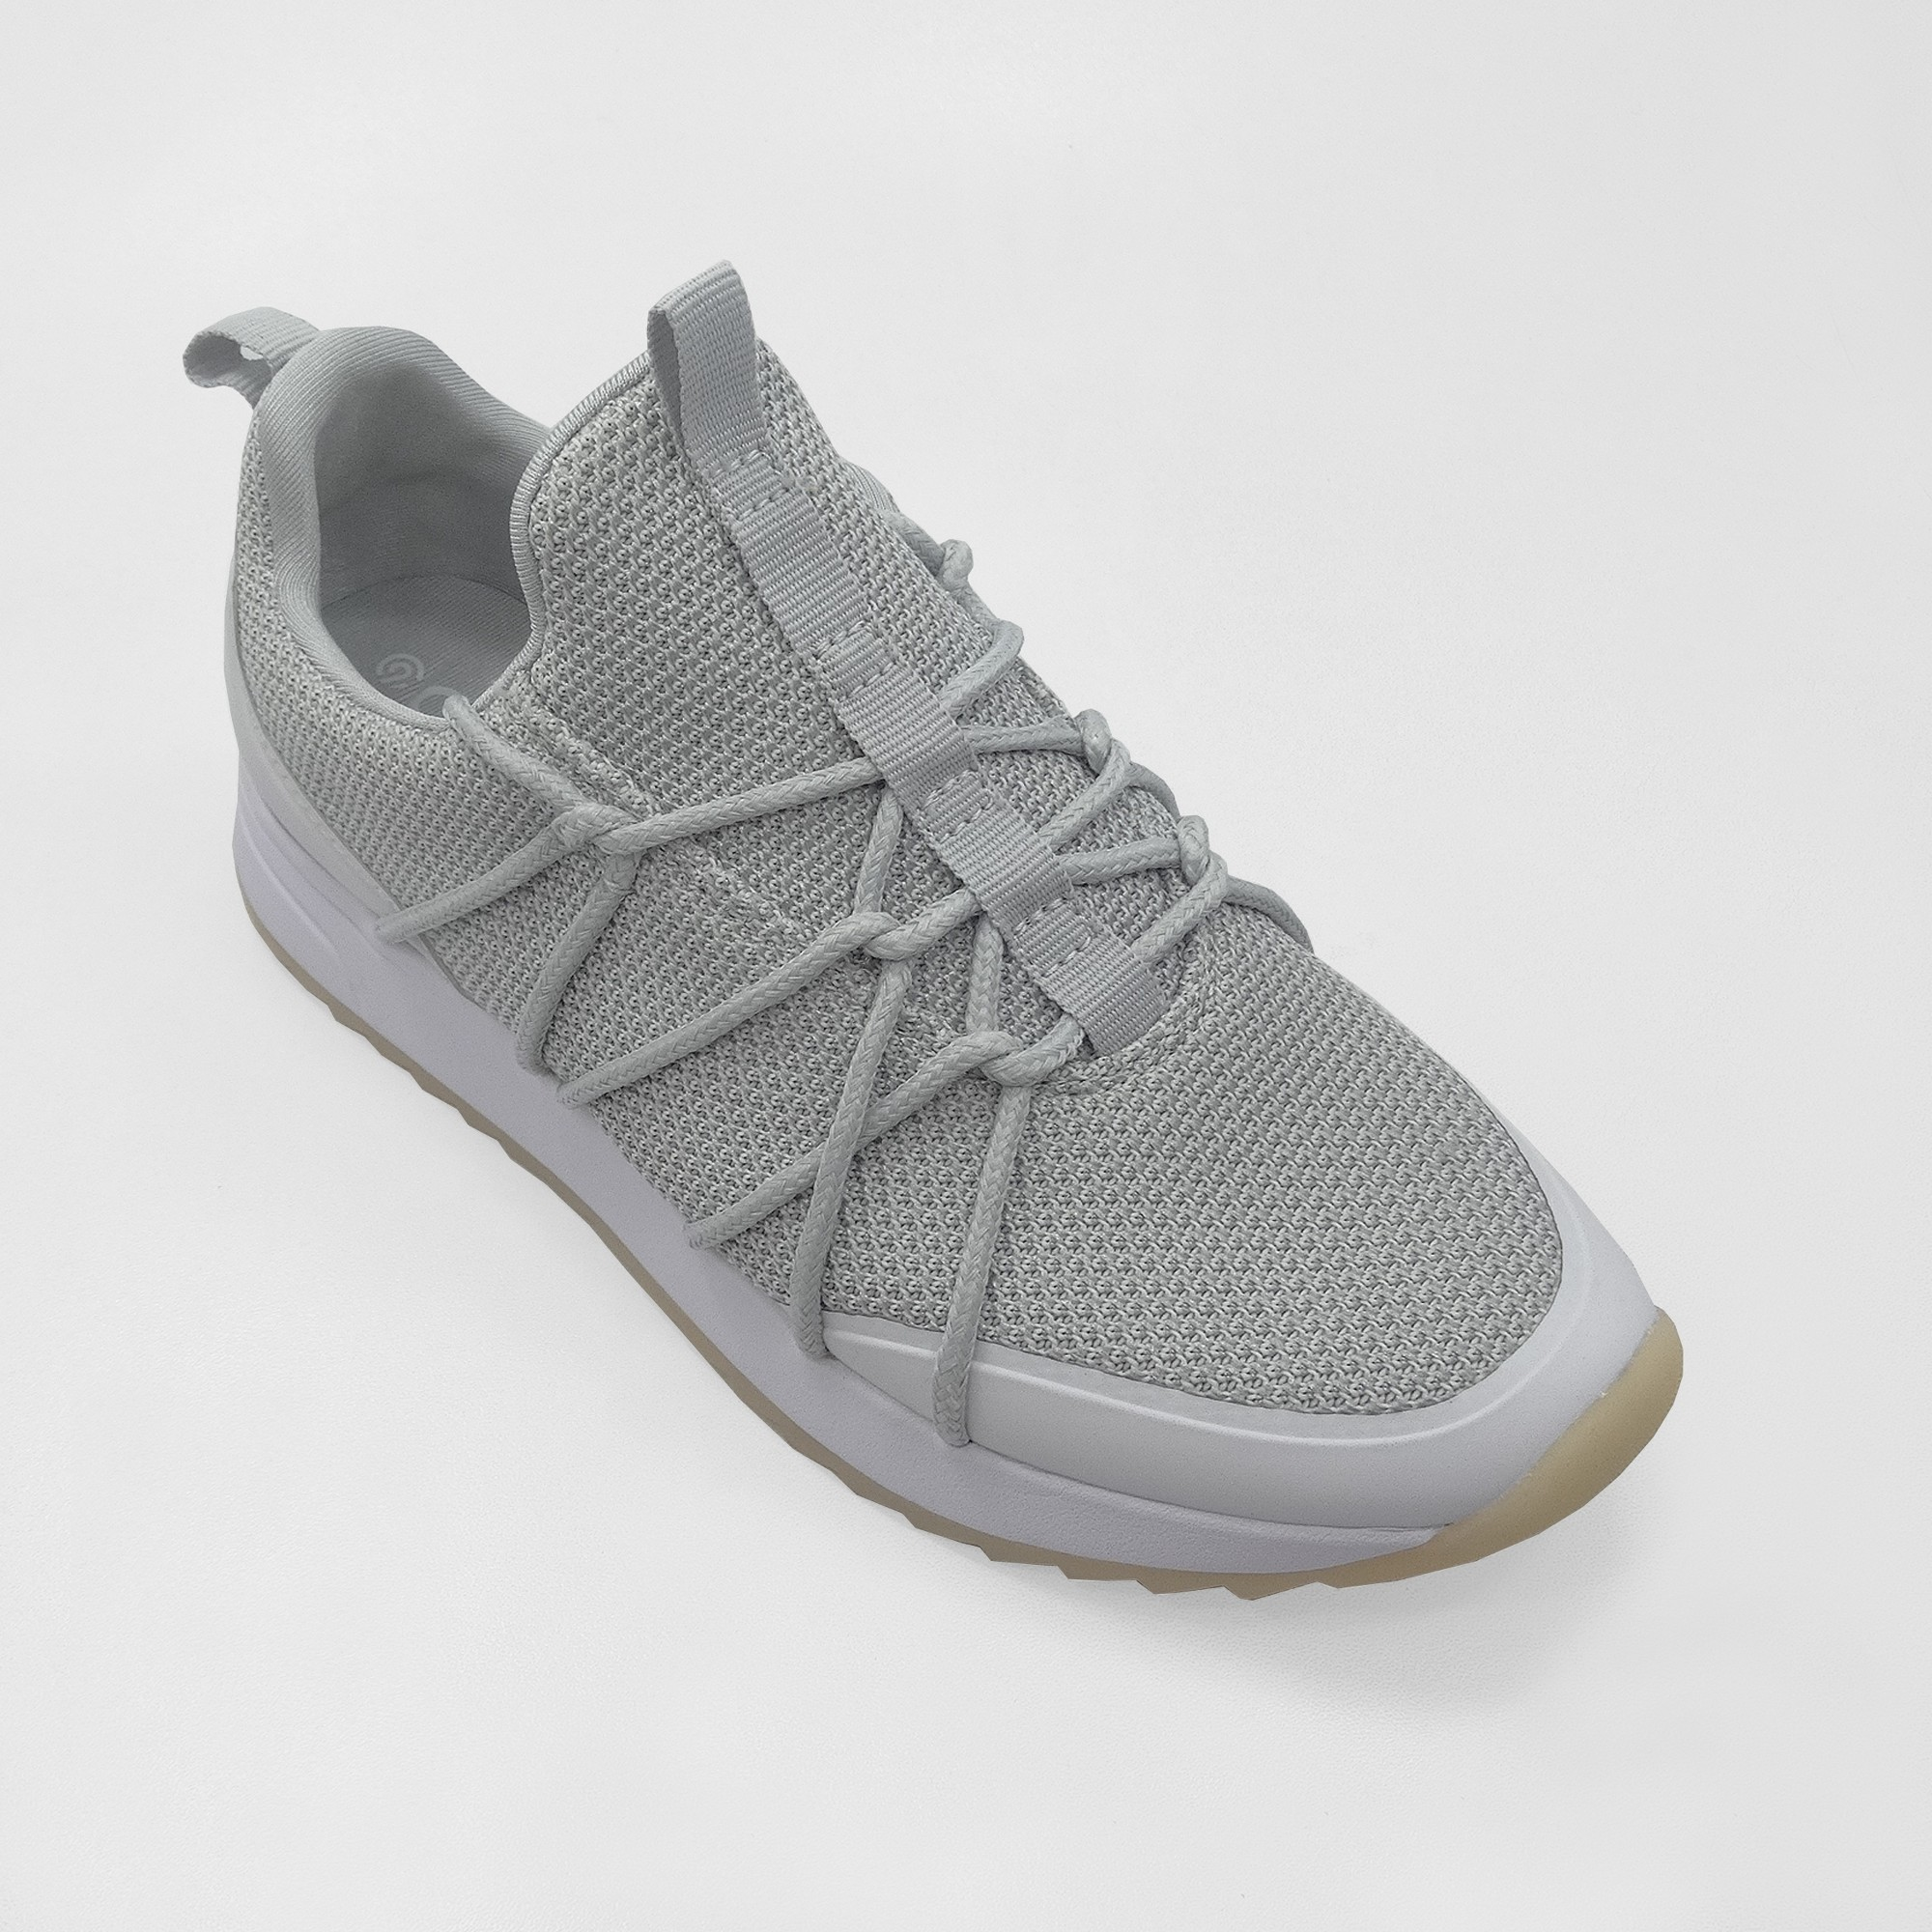 a98eee62dbb36 Women s Interval Mesh Sneakers - C9 Champion Gray 8.5